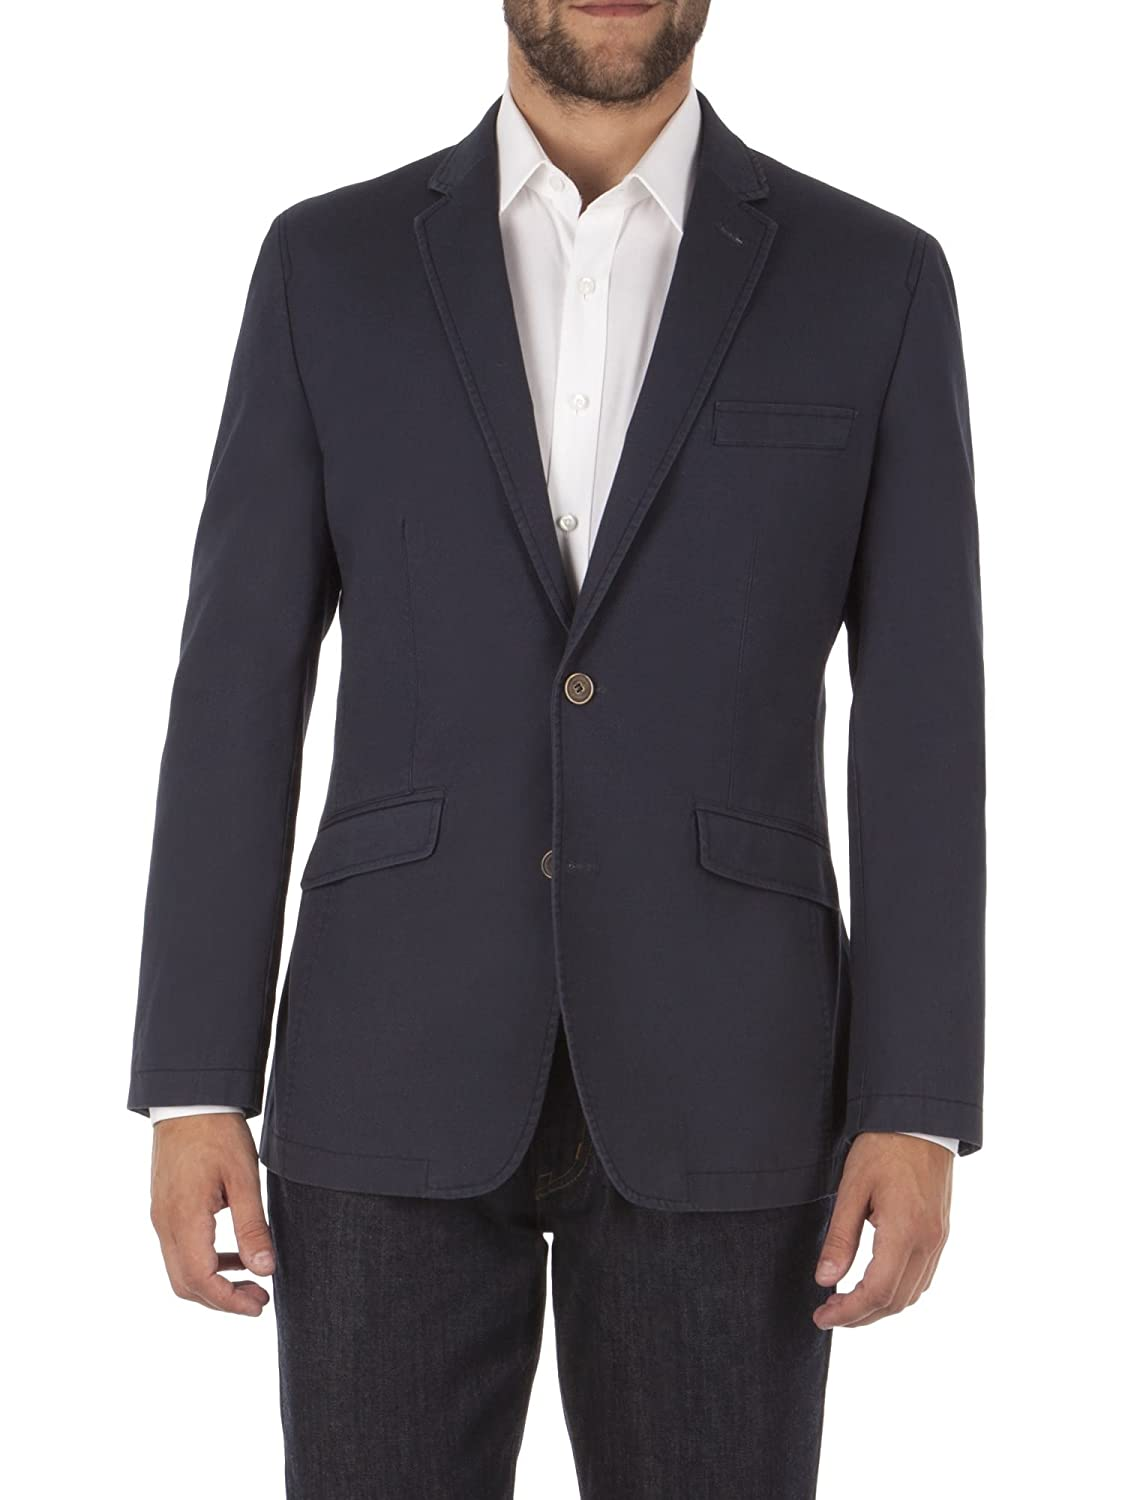 Suit Direct Aston & Gunn Navy Tailored Fit Linen Blend Casual Jacket - 0046385 Tailored Fit Coats And Jacket